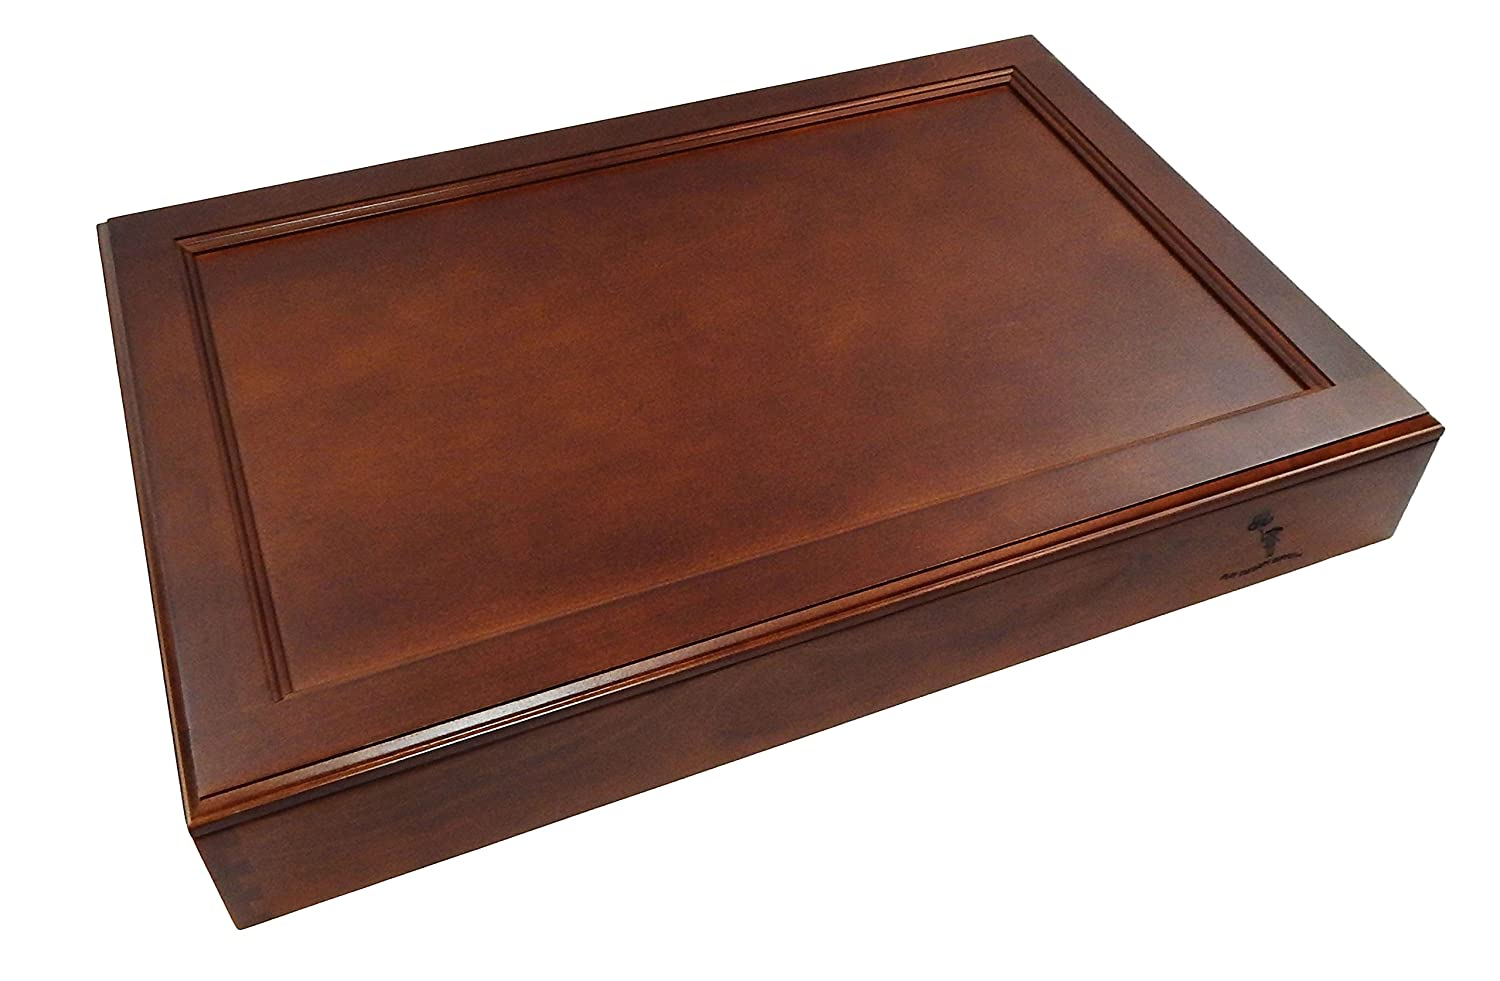 Play Therapy Supply Premium Wooden Sandtray with Lid